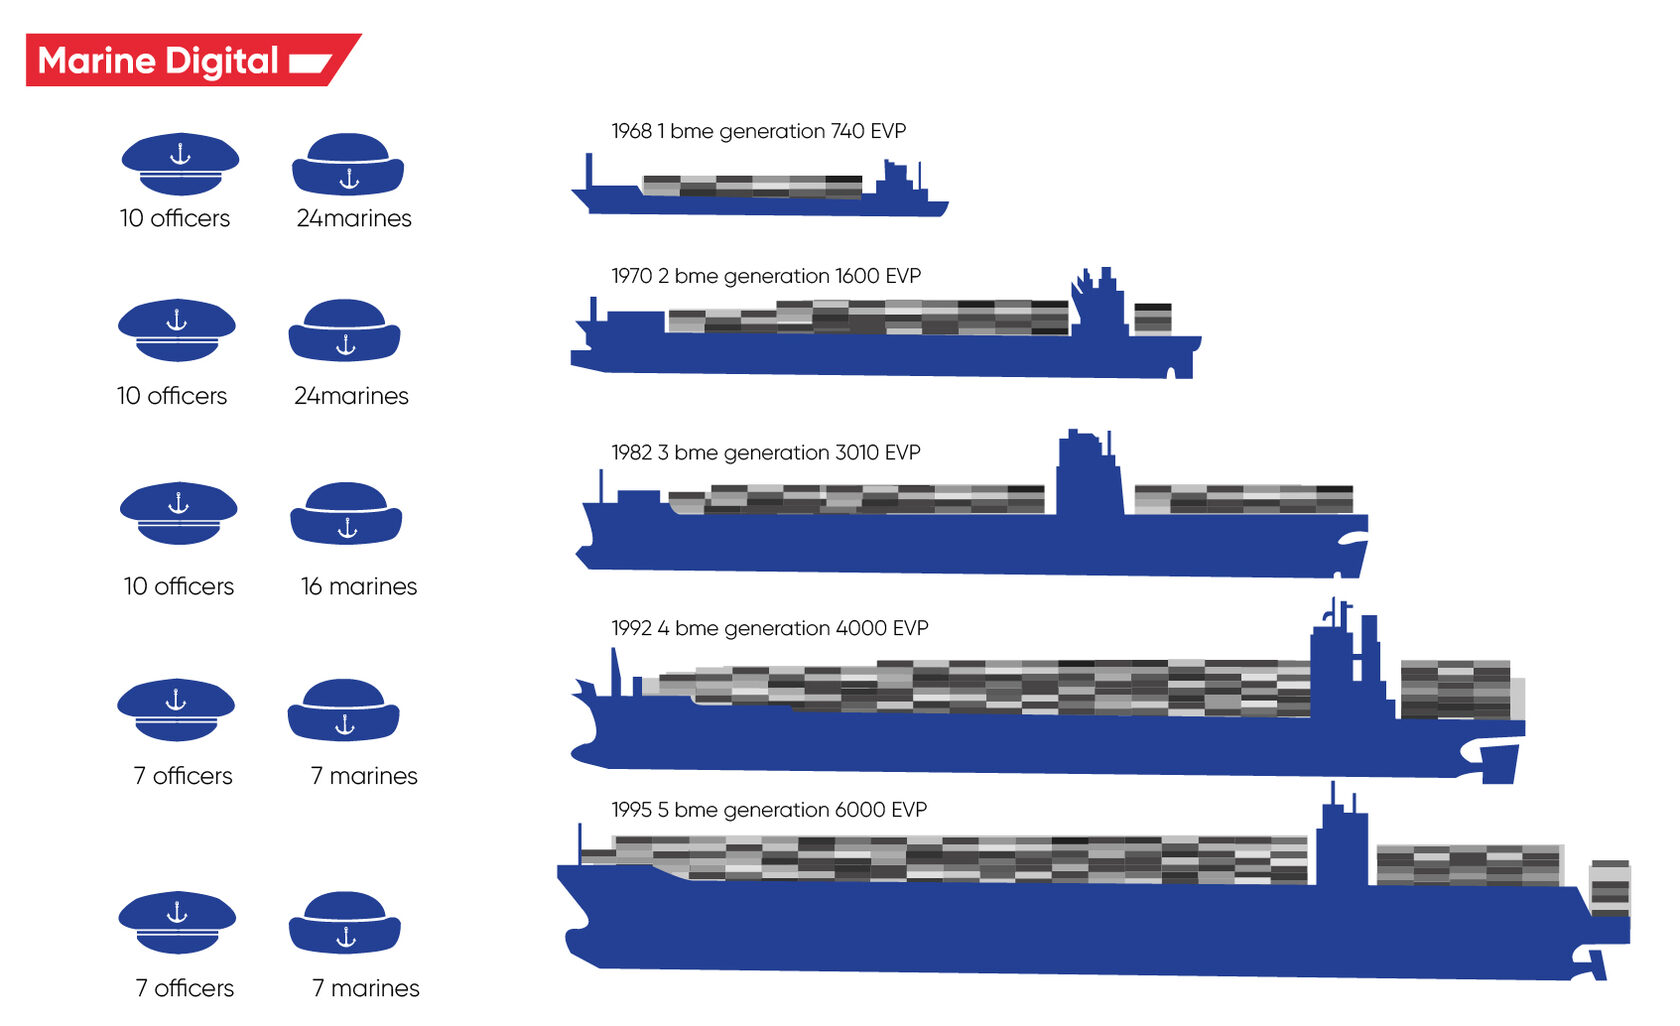 how the number of crews in the maritime industry has changed?